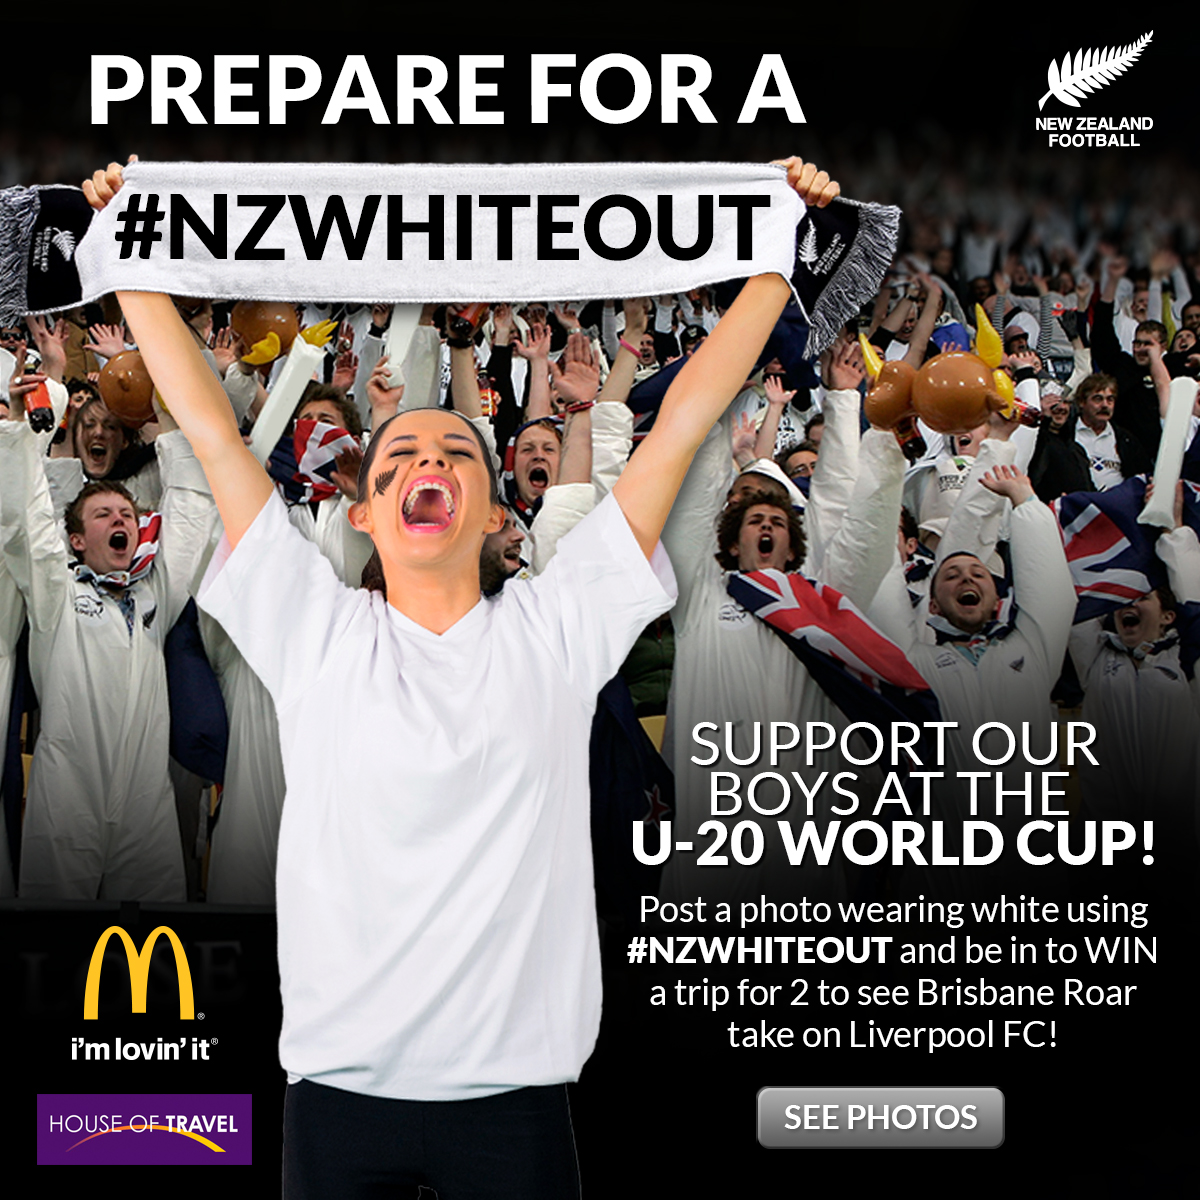 Prepare for a #NZWhiteout - Support our boys at the U-20 World Cup and be in to win a trip to see Liverpool play in Brisbane